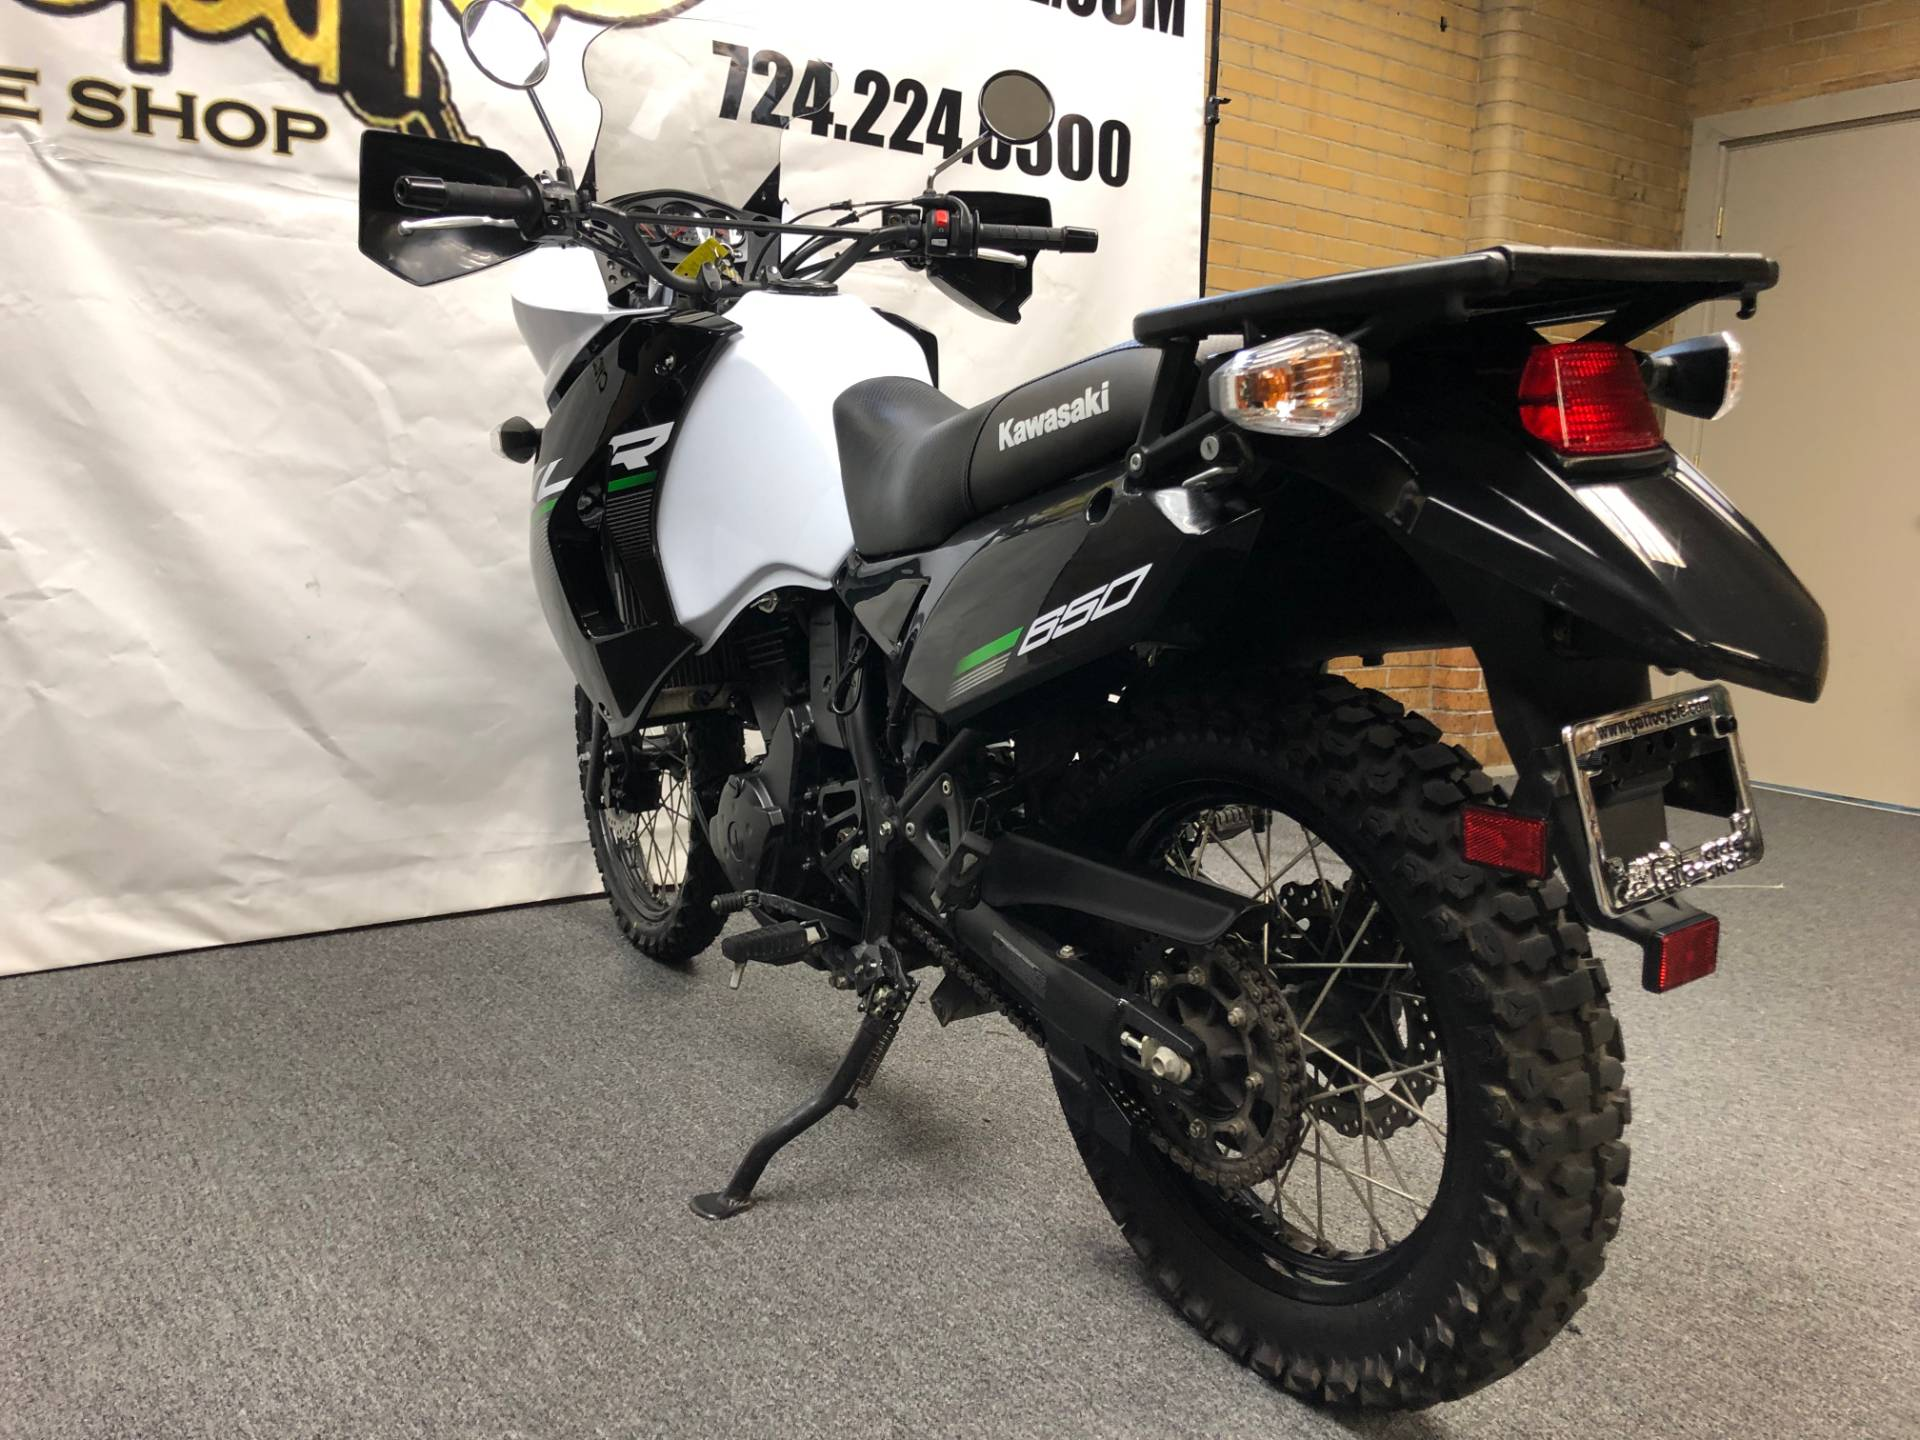 2015 Kawasaki KLR™650 in Tarentum, Pennsylvania - Photo 3